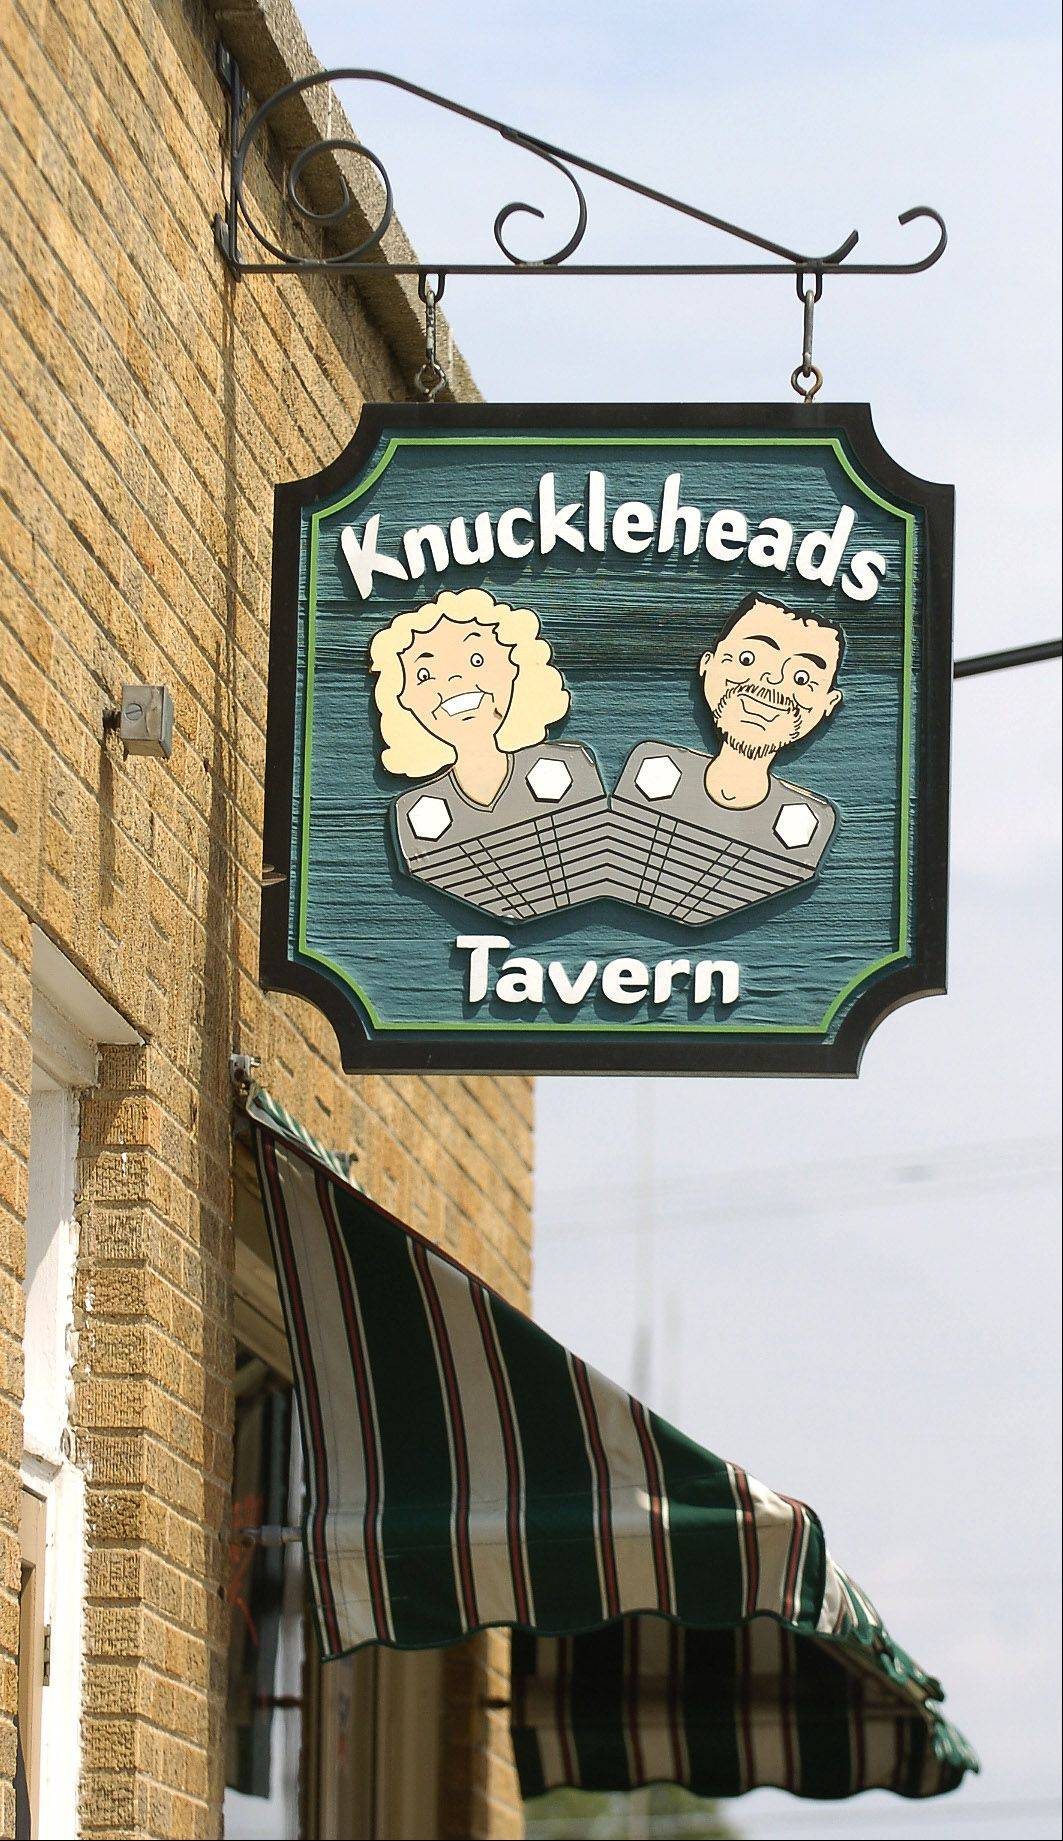 Knuckleheads Tavern on First Street in downtown Elburn has requested the village allow liquor sales at 11 a.m. instead of noon on Sundays.